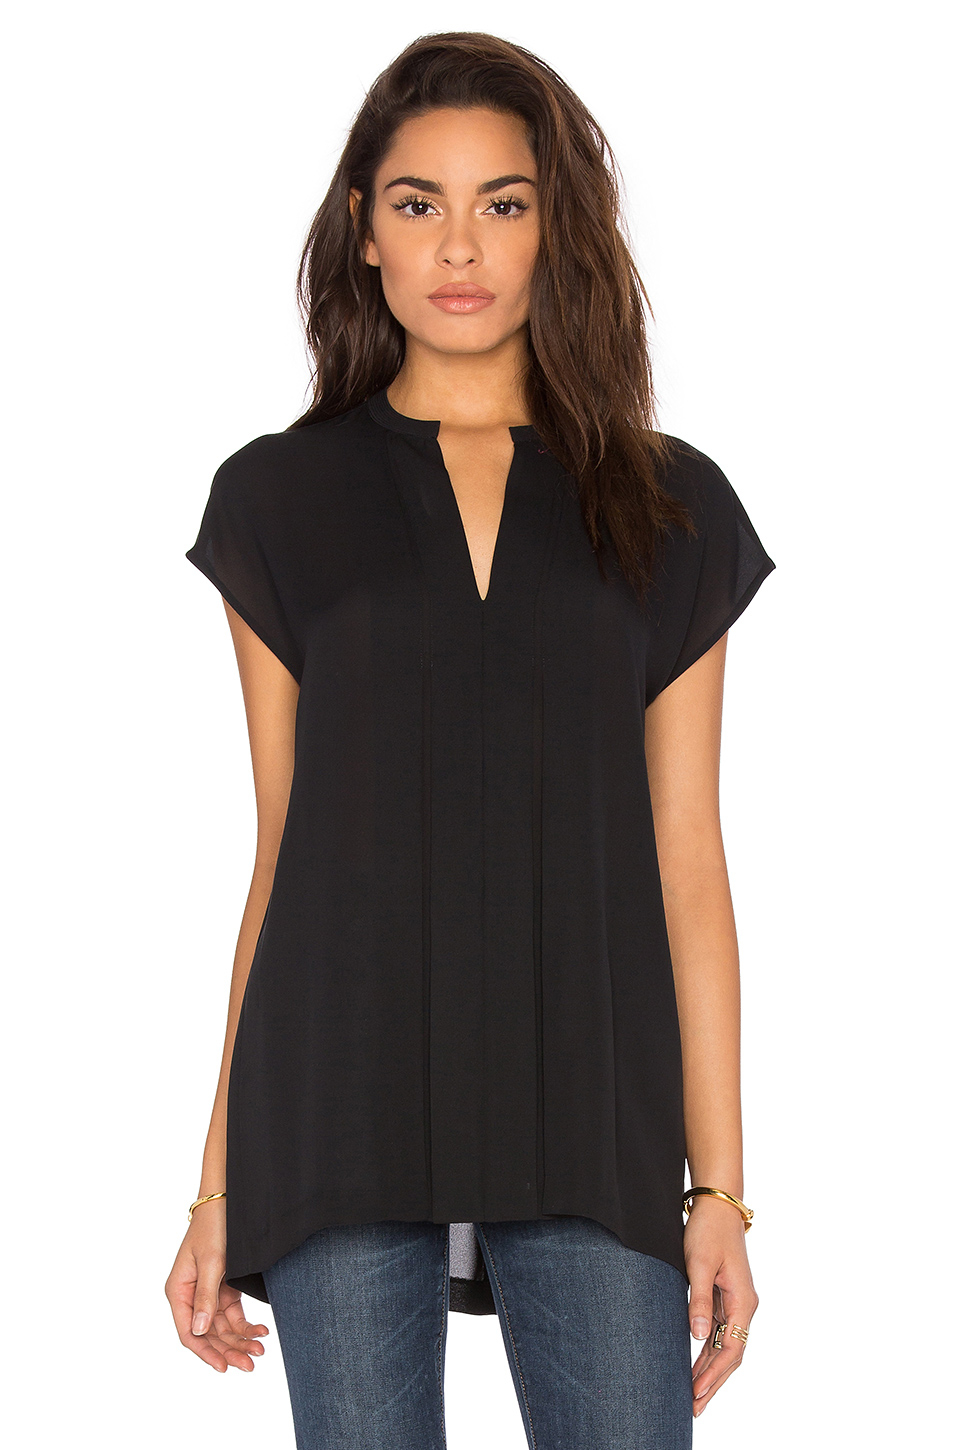 Best prices on Black short sleeve silk in Women's Shirts & Blouses online. Visit Bizrate to find the best deals on top brands. Read reviews on Clothing & Accessories merchants and buy with confidence.